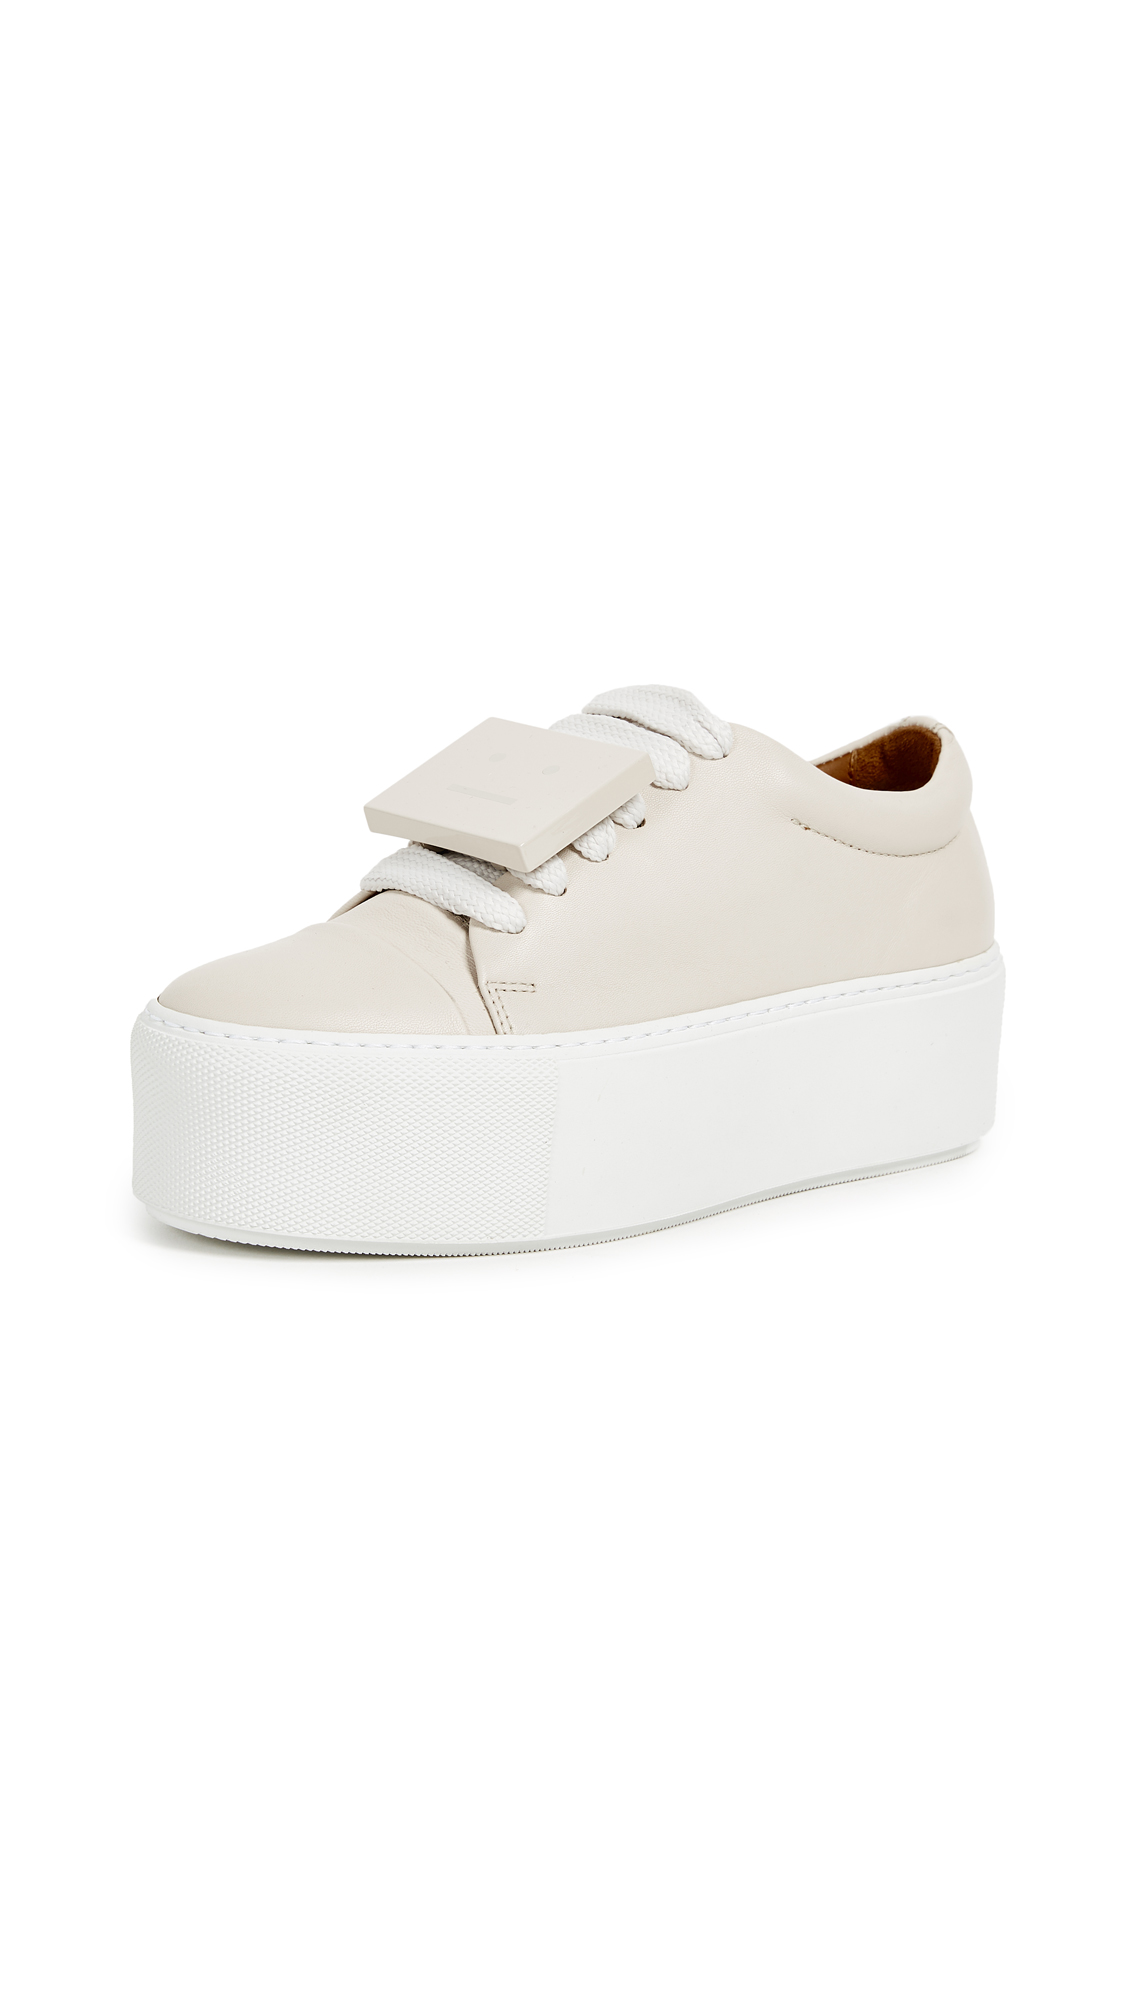 Acne Studios Drihannah Sneakers - Off White/Amber